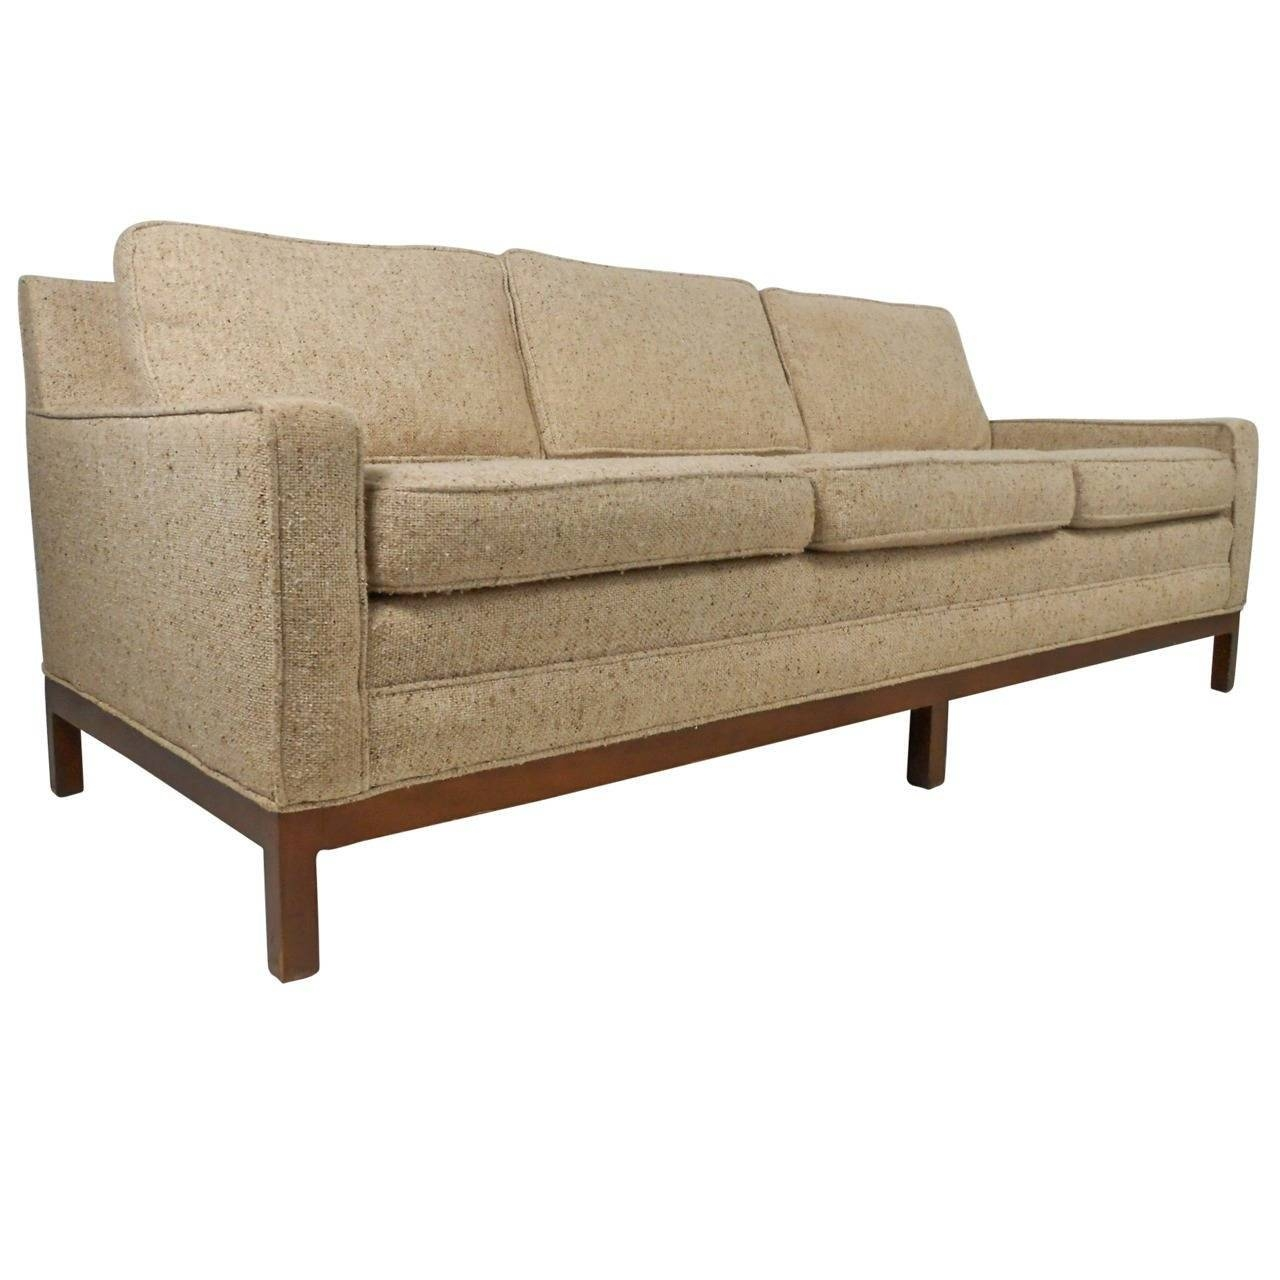 Stylish Vintage Modern Sofa After Florence Knoll For Sale At 1Stdibs In Knoll Sofas (View 8 of 15)